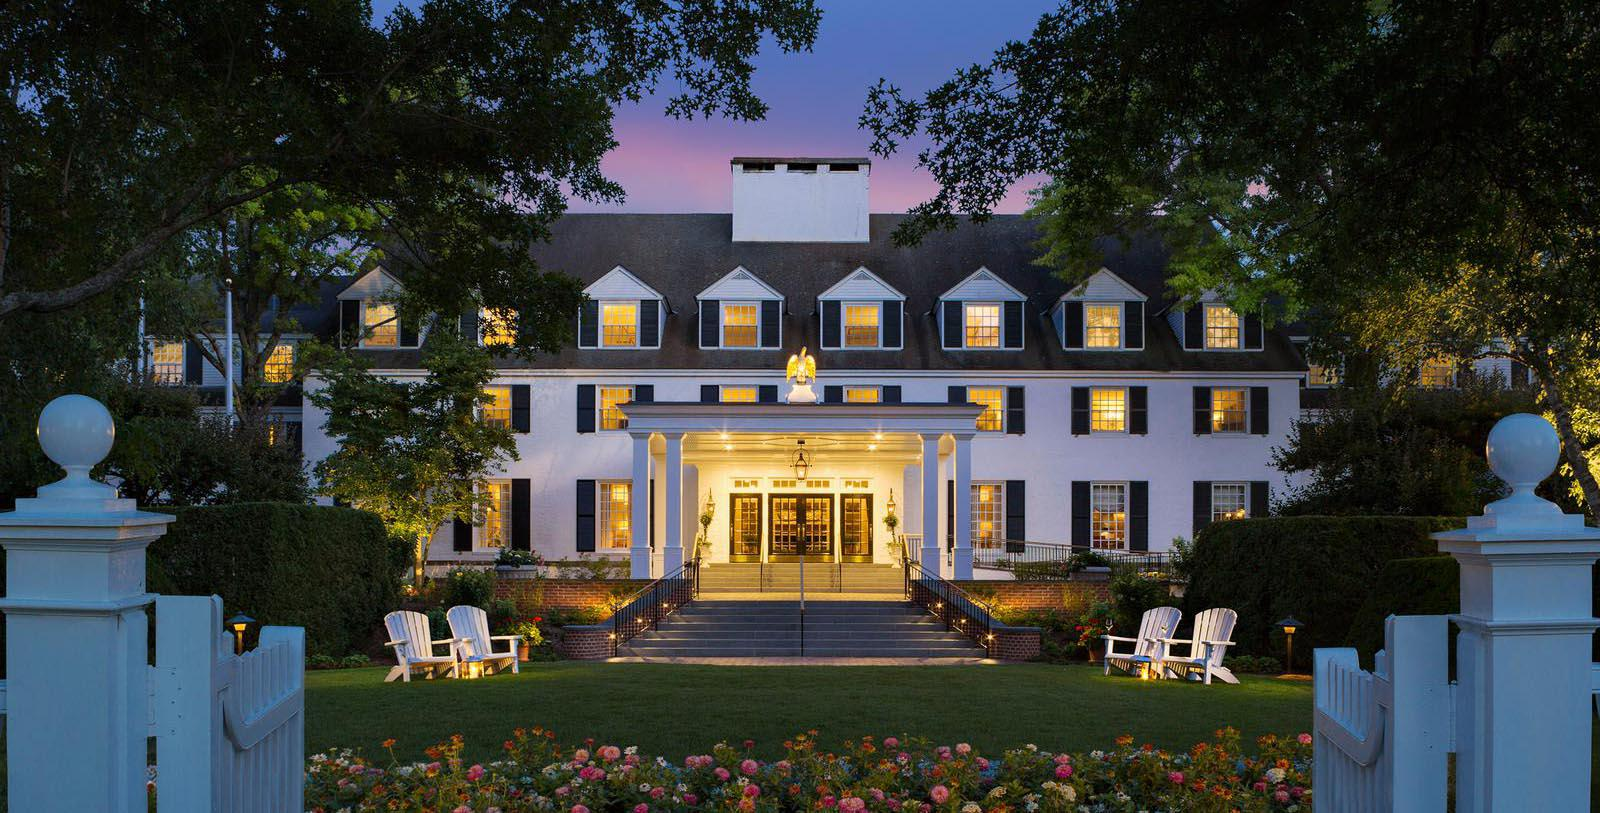 Image of hotel exterior Woodstock Inn & Resort, 1793, Member of Historic Hotels of America, in Woodstock, Vermont, Special Offers, Discounted Rates, Families, Romantic Escape, Honeymoons, Anniversaries, Reunions